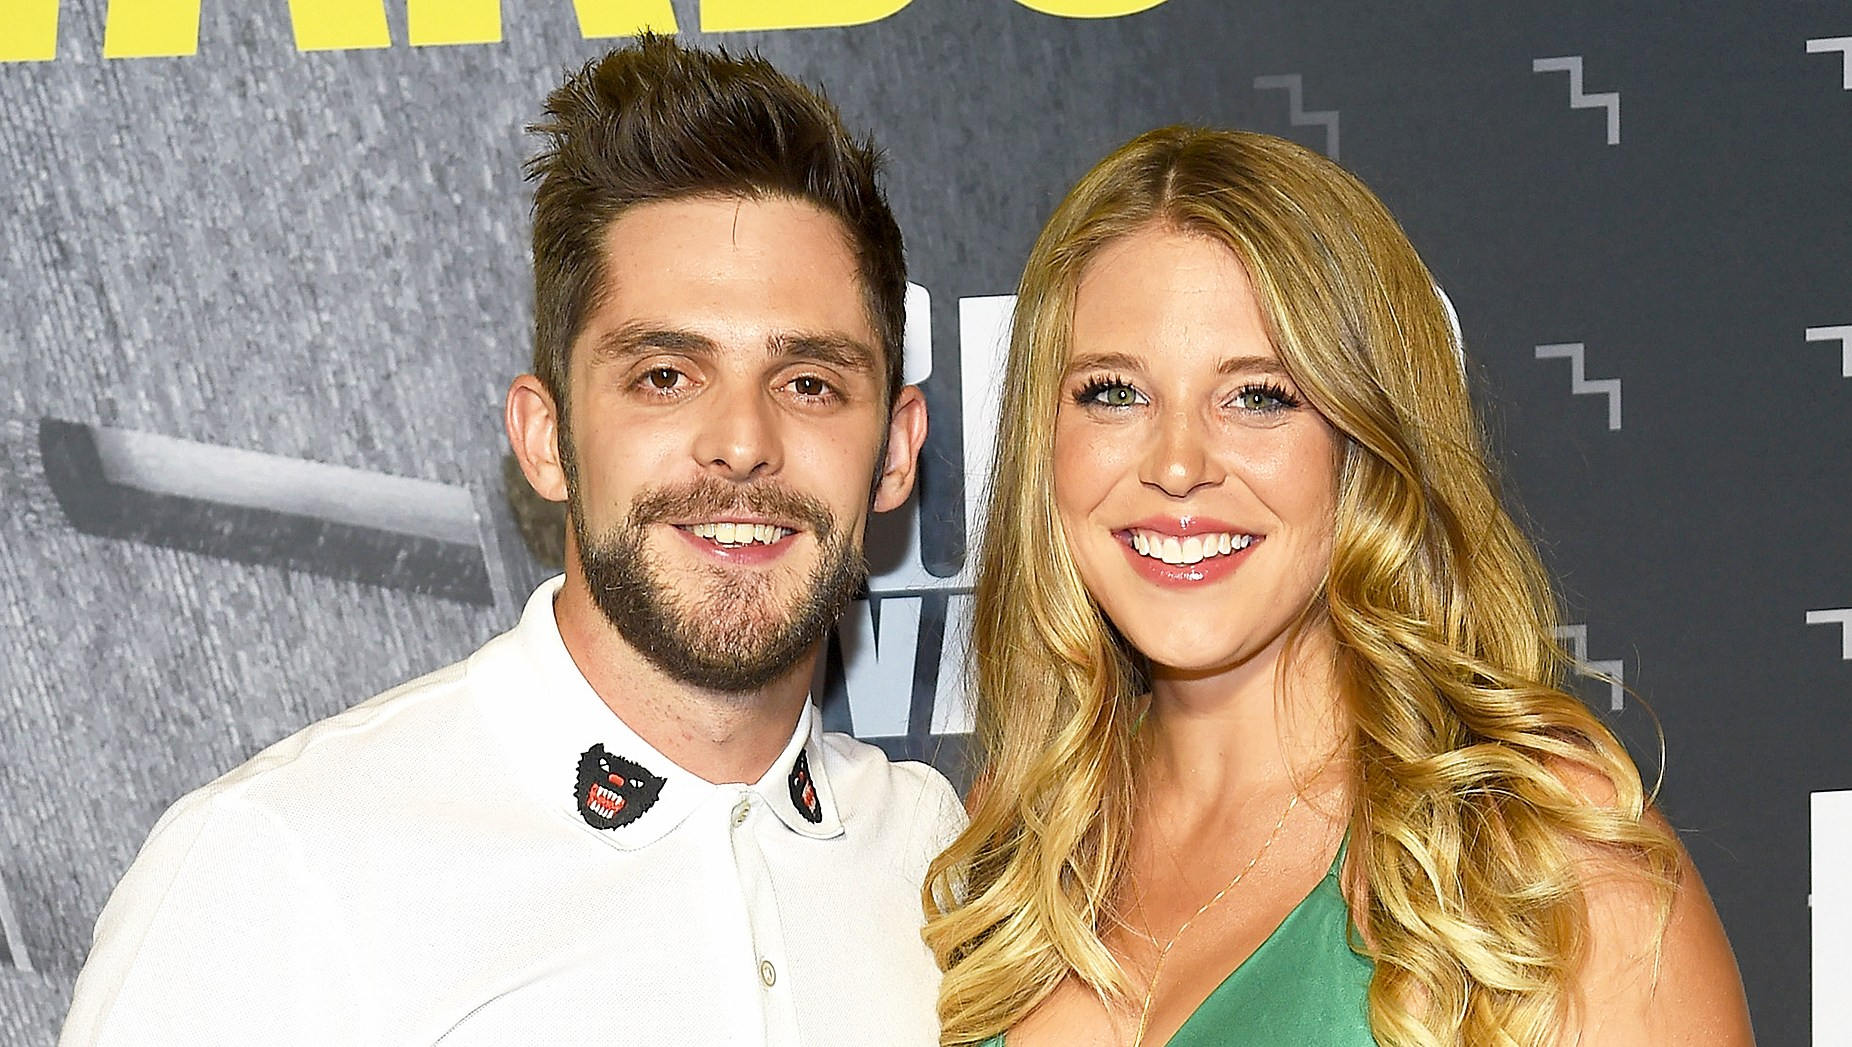 Thomas Rhett and wife Lauren Akins attend the 2017 CMT Music Awards at the Music City Center in Nashville, Tennessee.